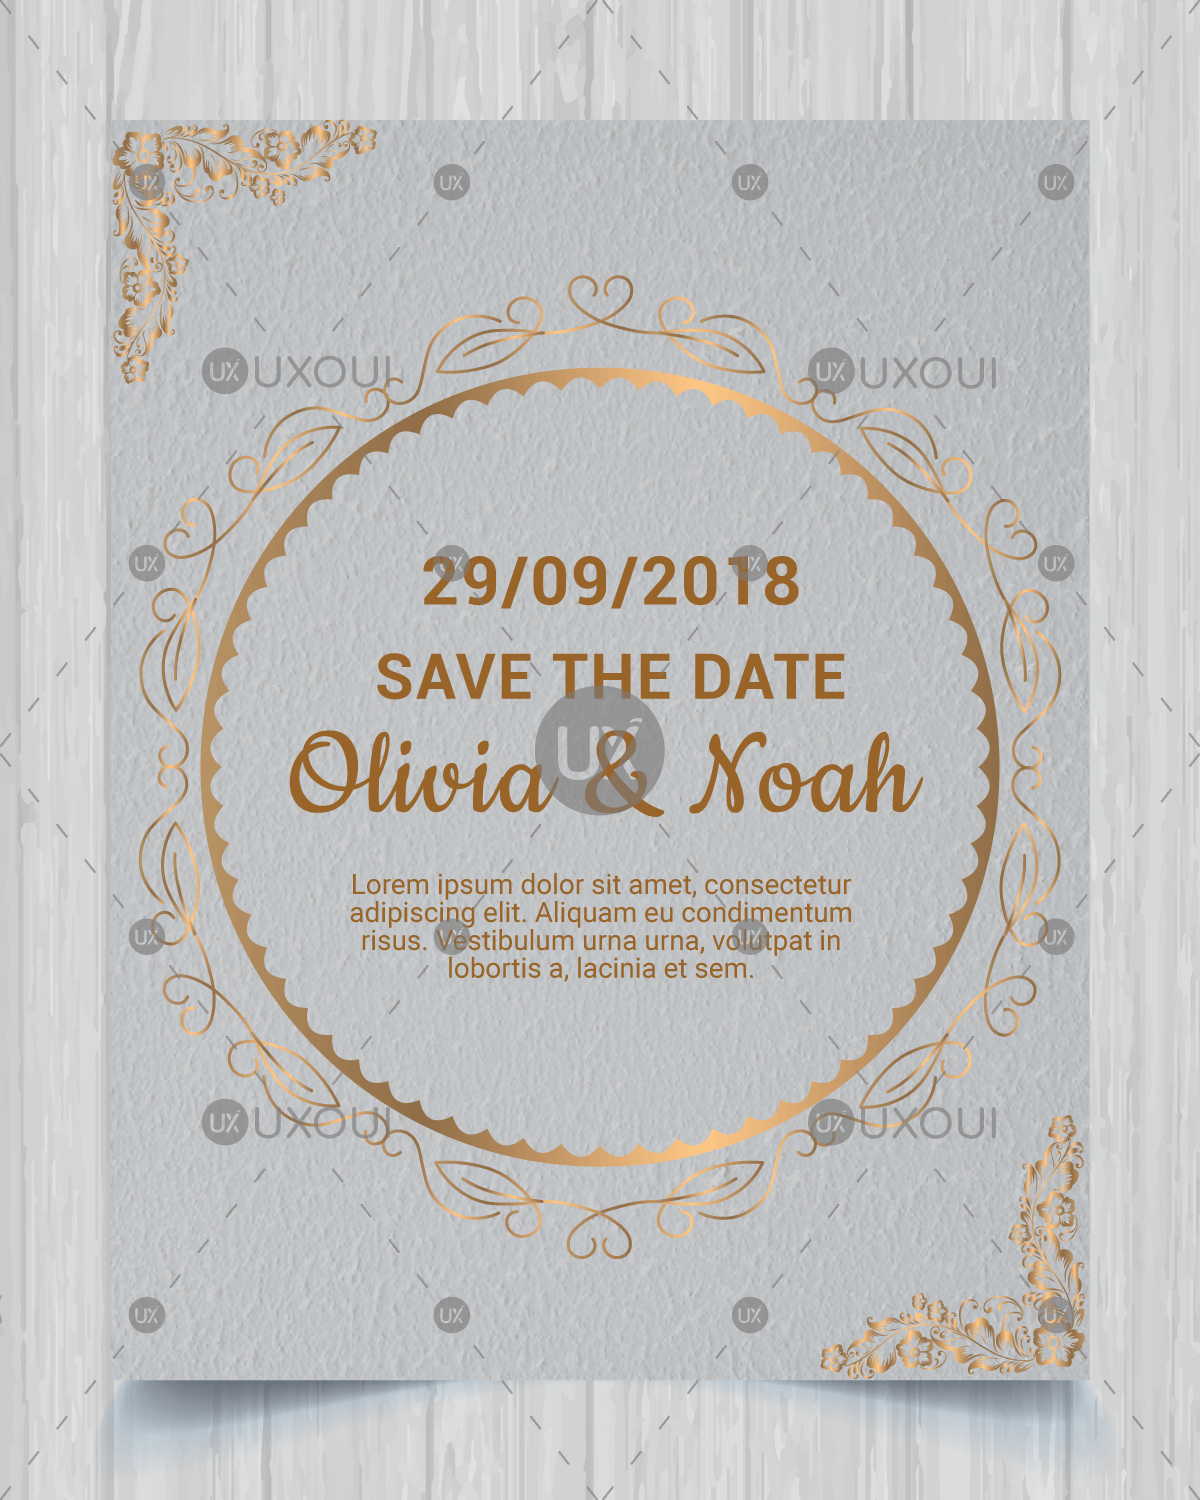 Vector Luxury Save The Date Invitation Card Design Template For Wedding With Mandala Vector Uxoui